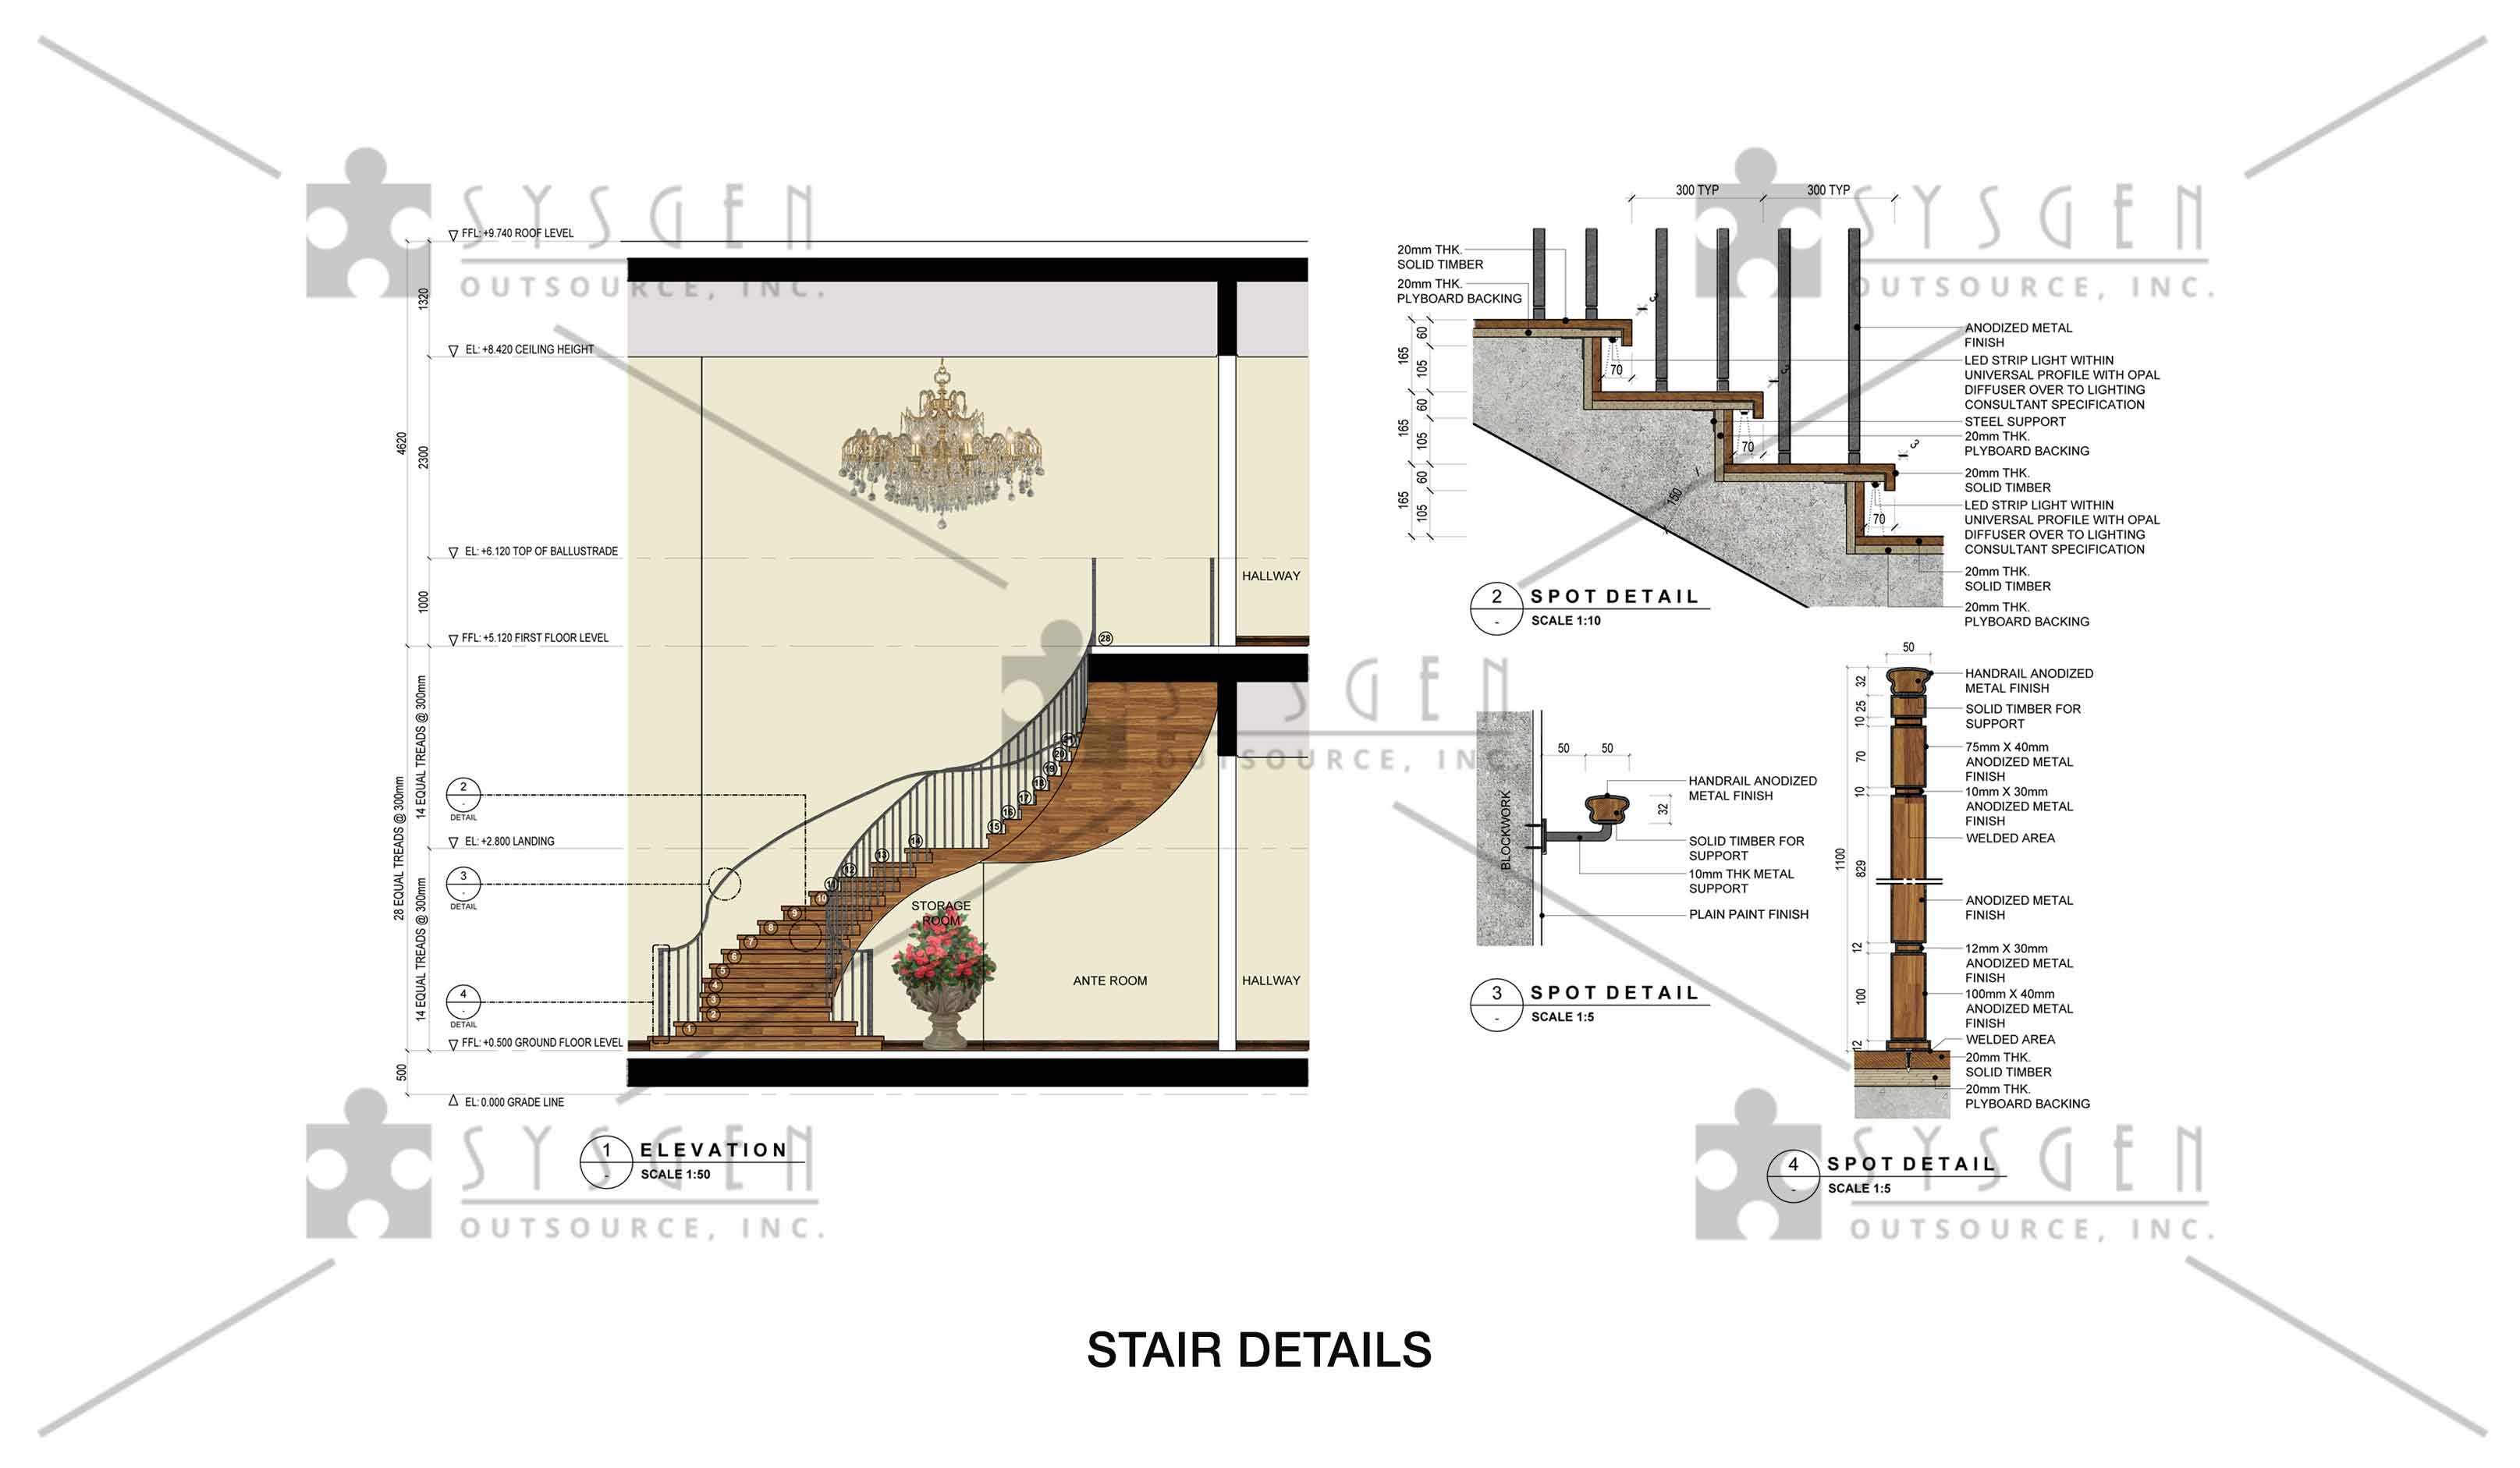 sysgen-outsource-cad-outsourcing-services-sketch-up-resi_villa-katnis12